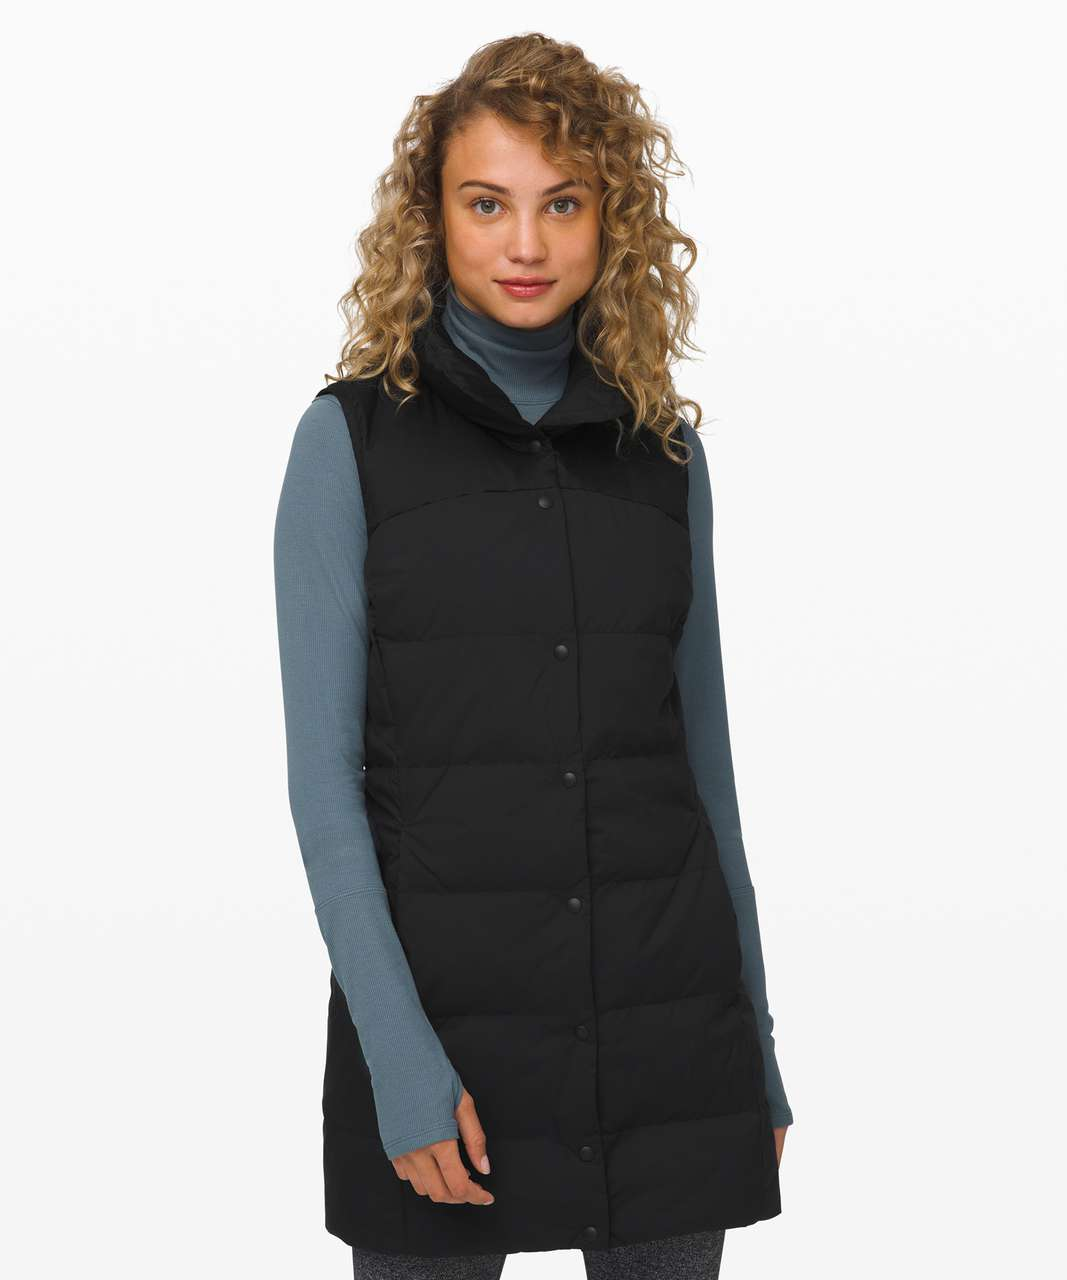 Lululemon Chill Days Vest - Black